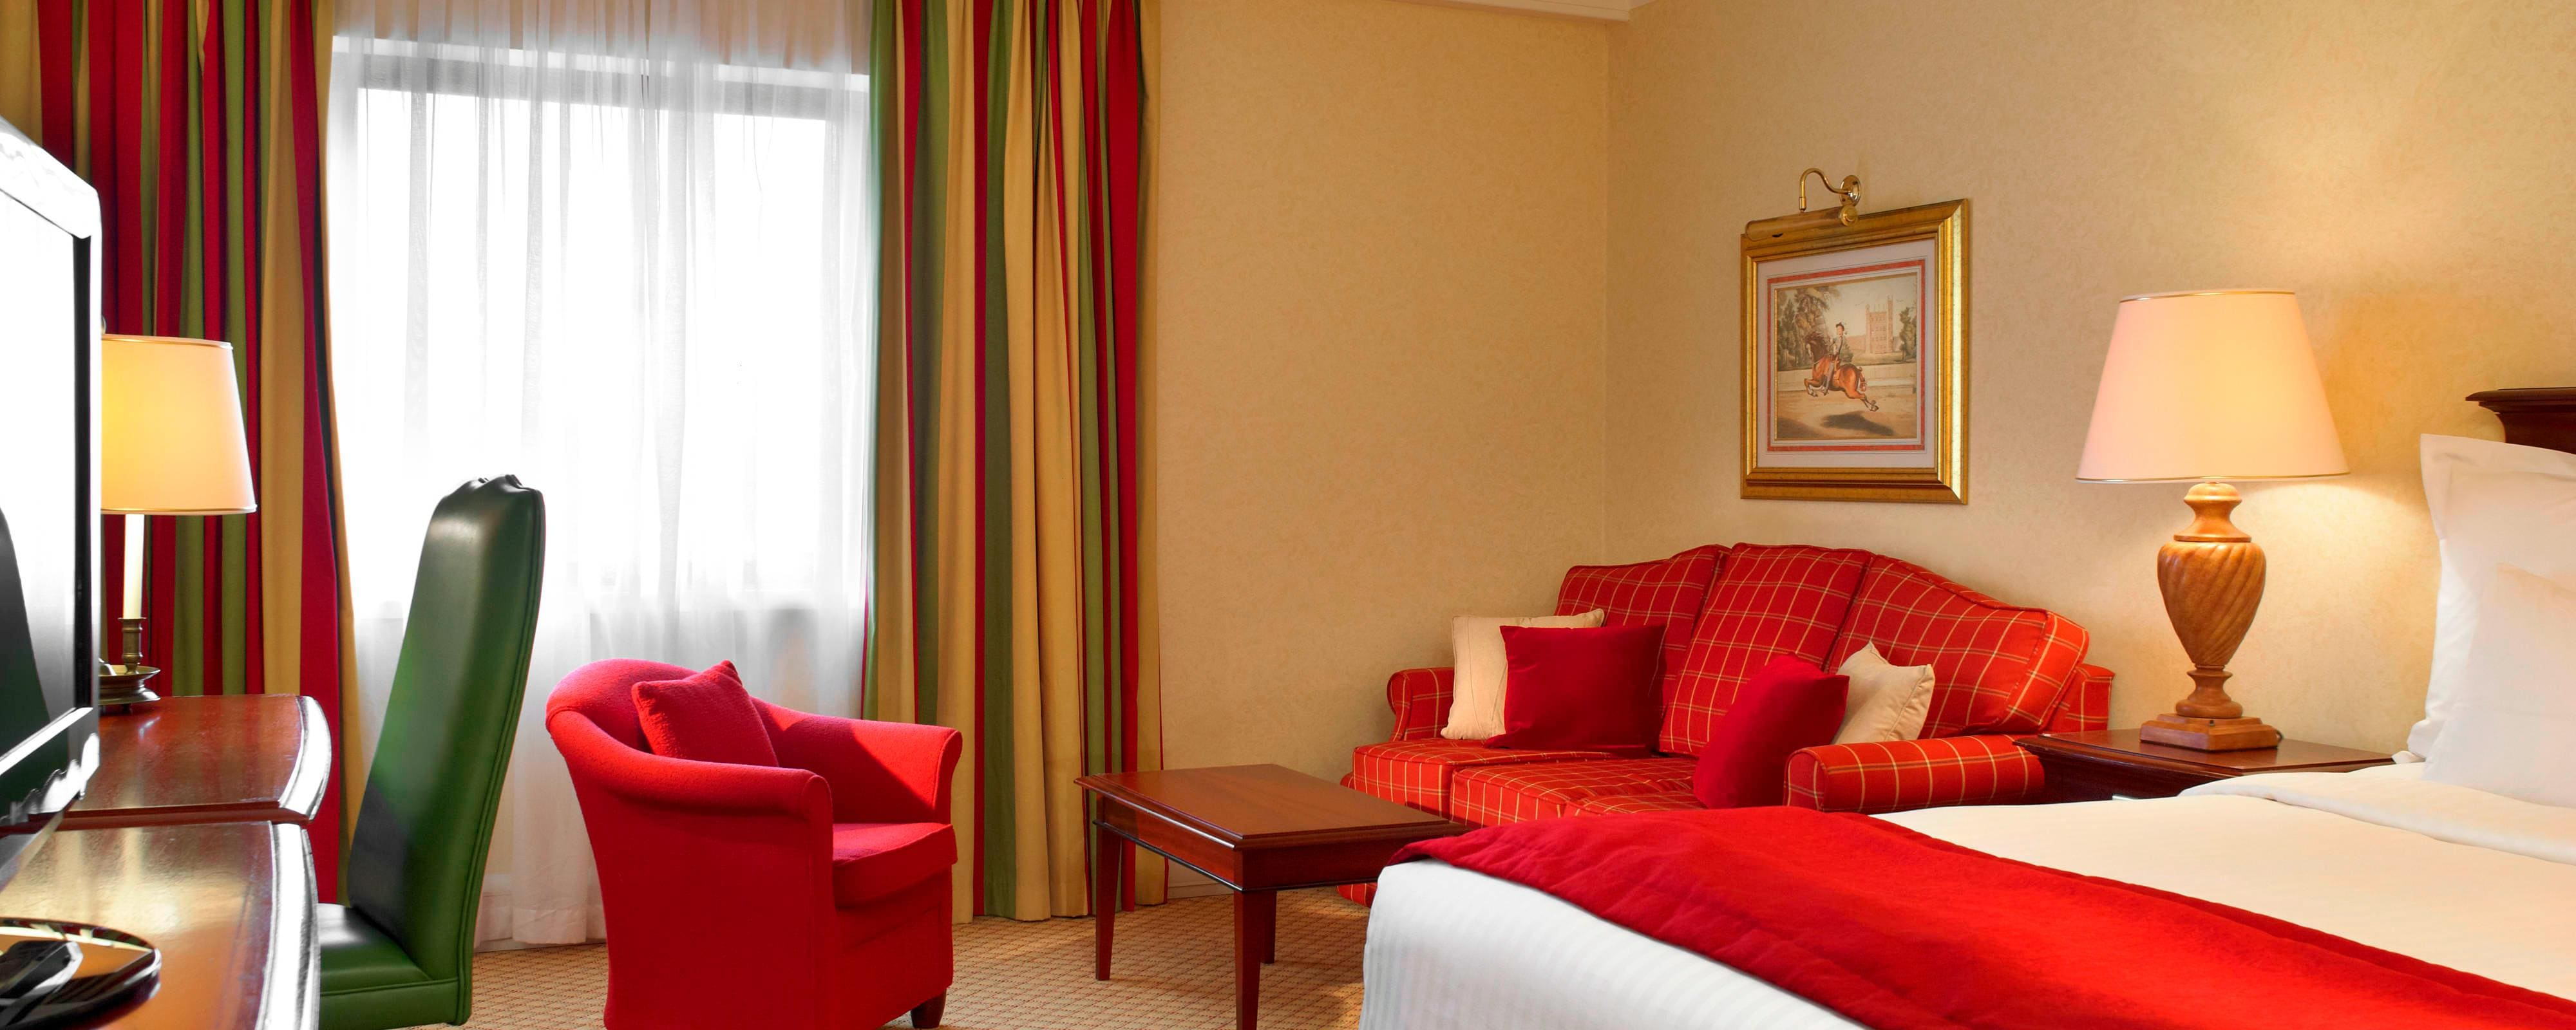 Guest Rooms Bexleyheath Marriott